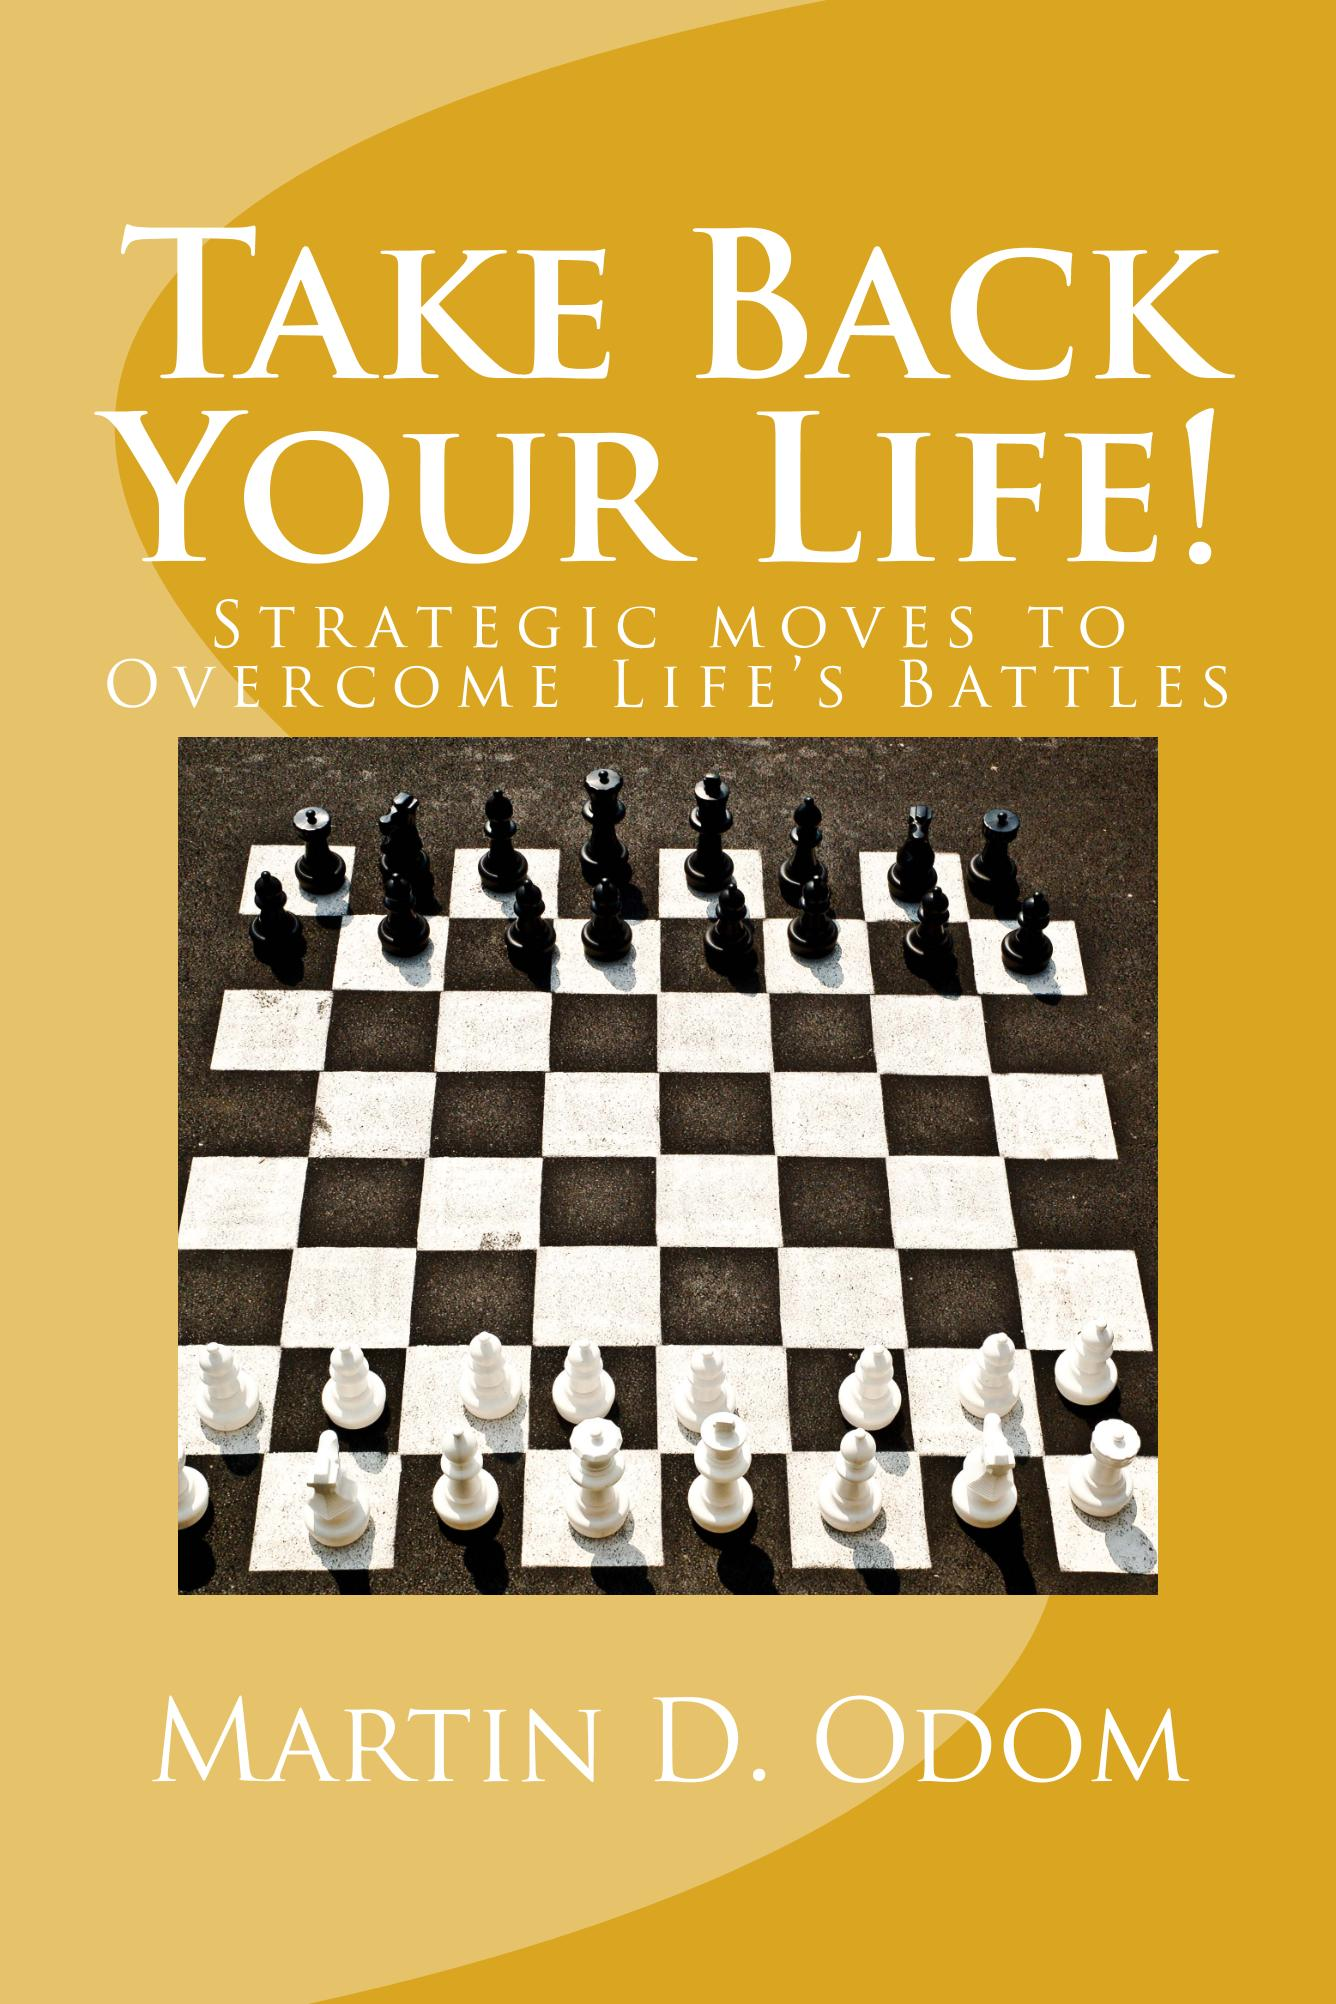 Take Back Your Life! Strategic Moves to Overcome Life's Battles